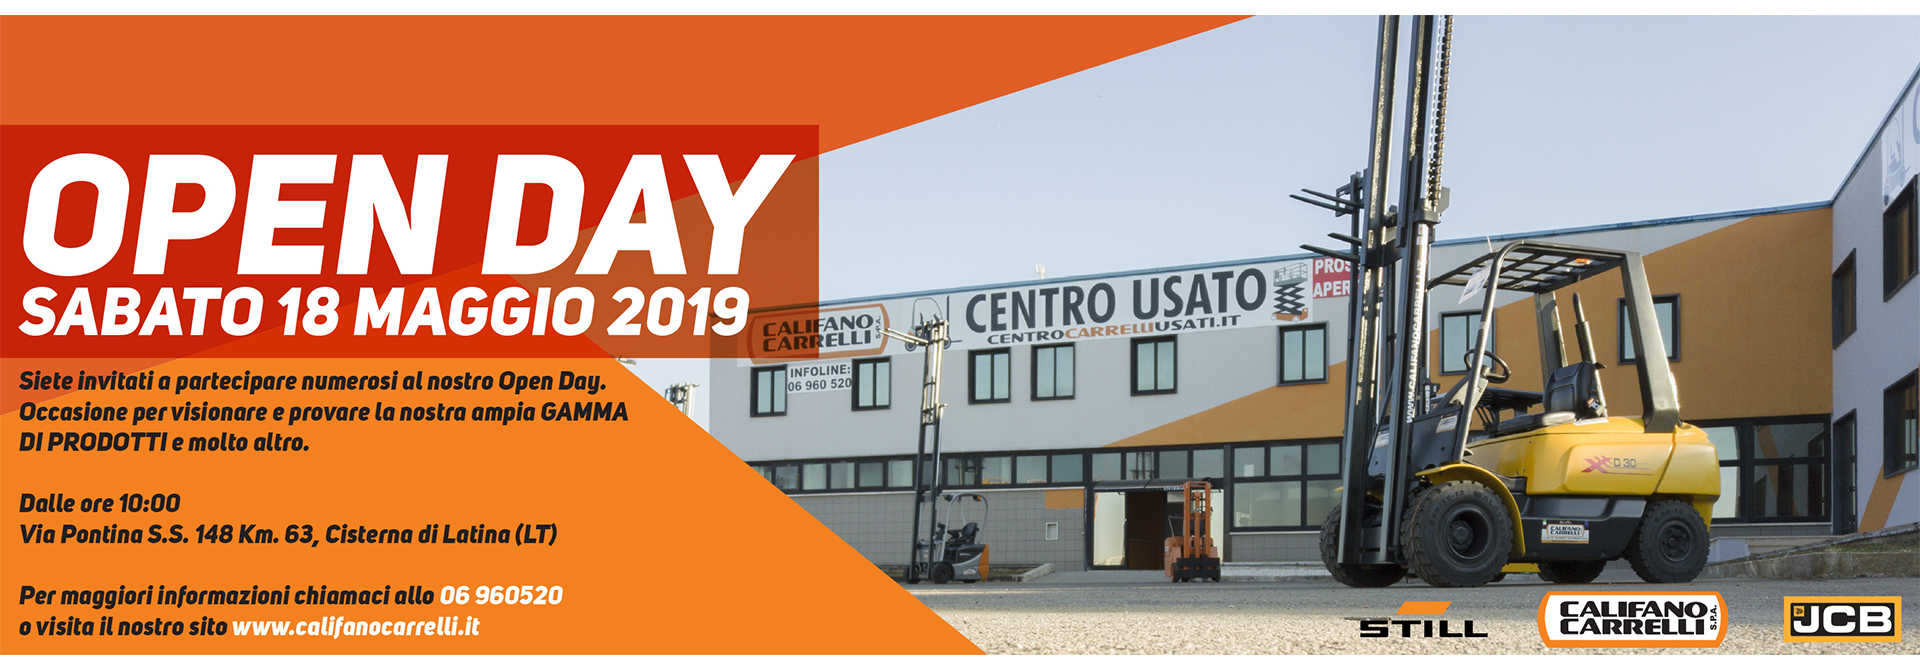 Califano carrelli open day 18 maggio